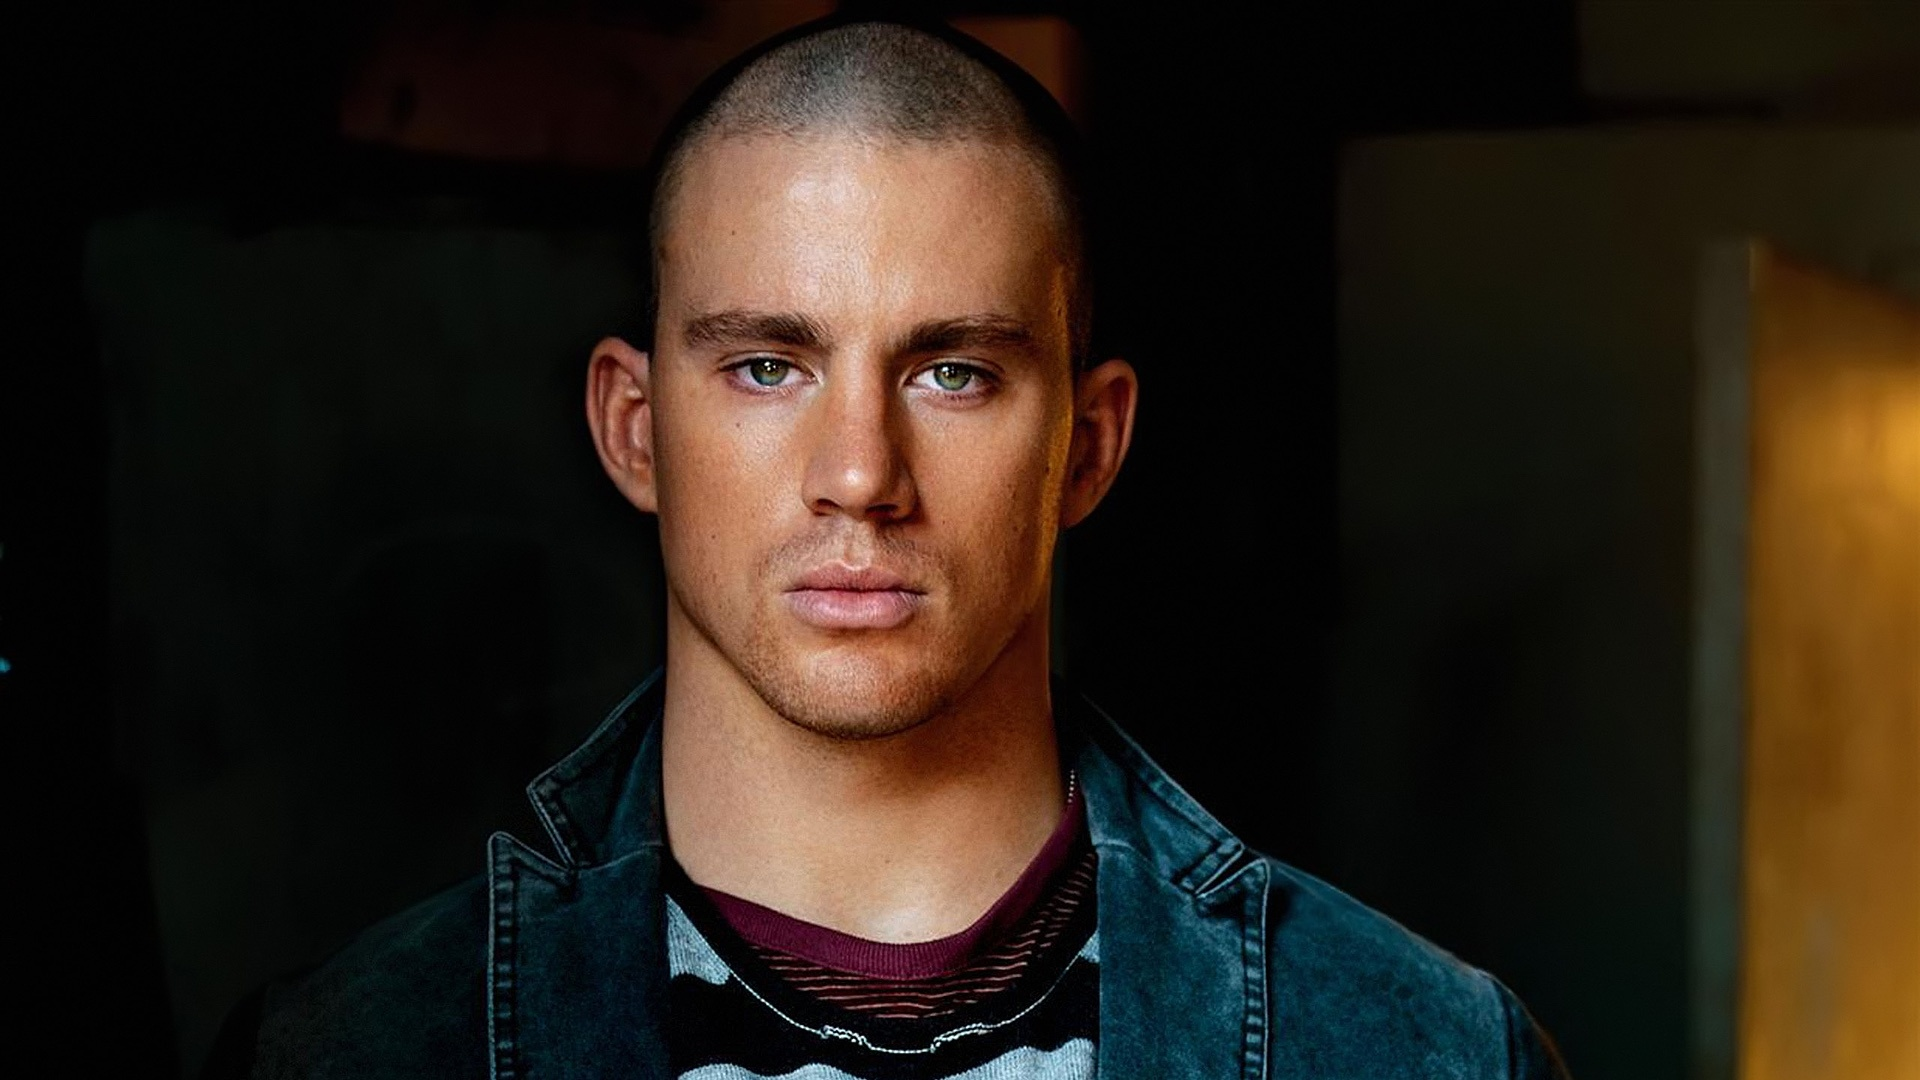 Channing Tatum Pics, Celebrity Collection